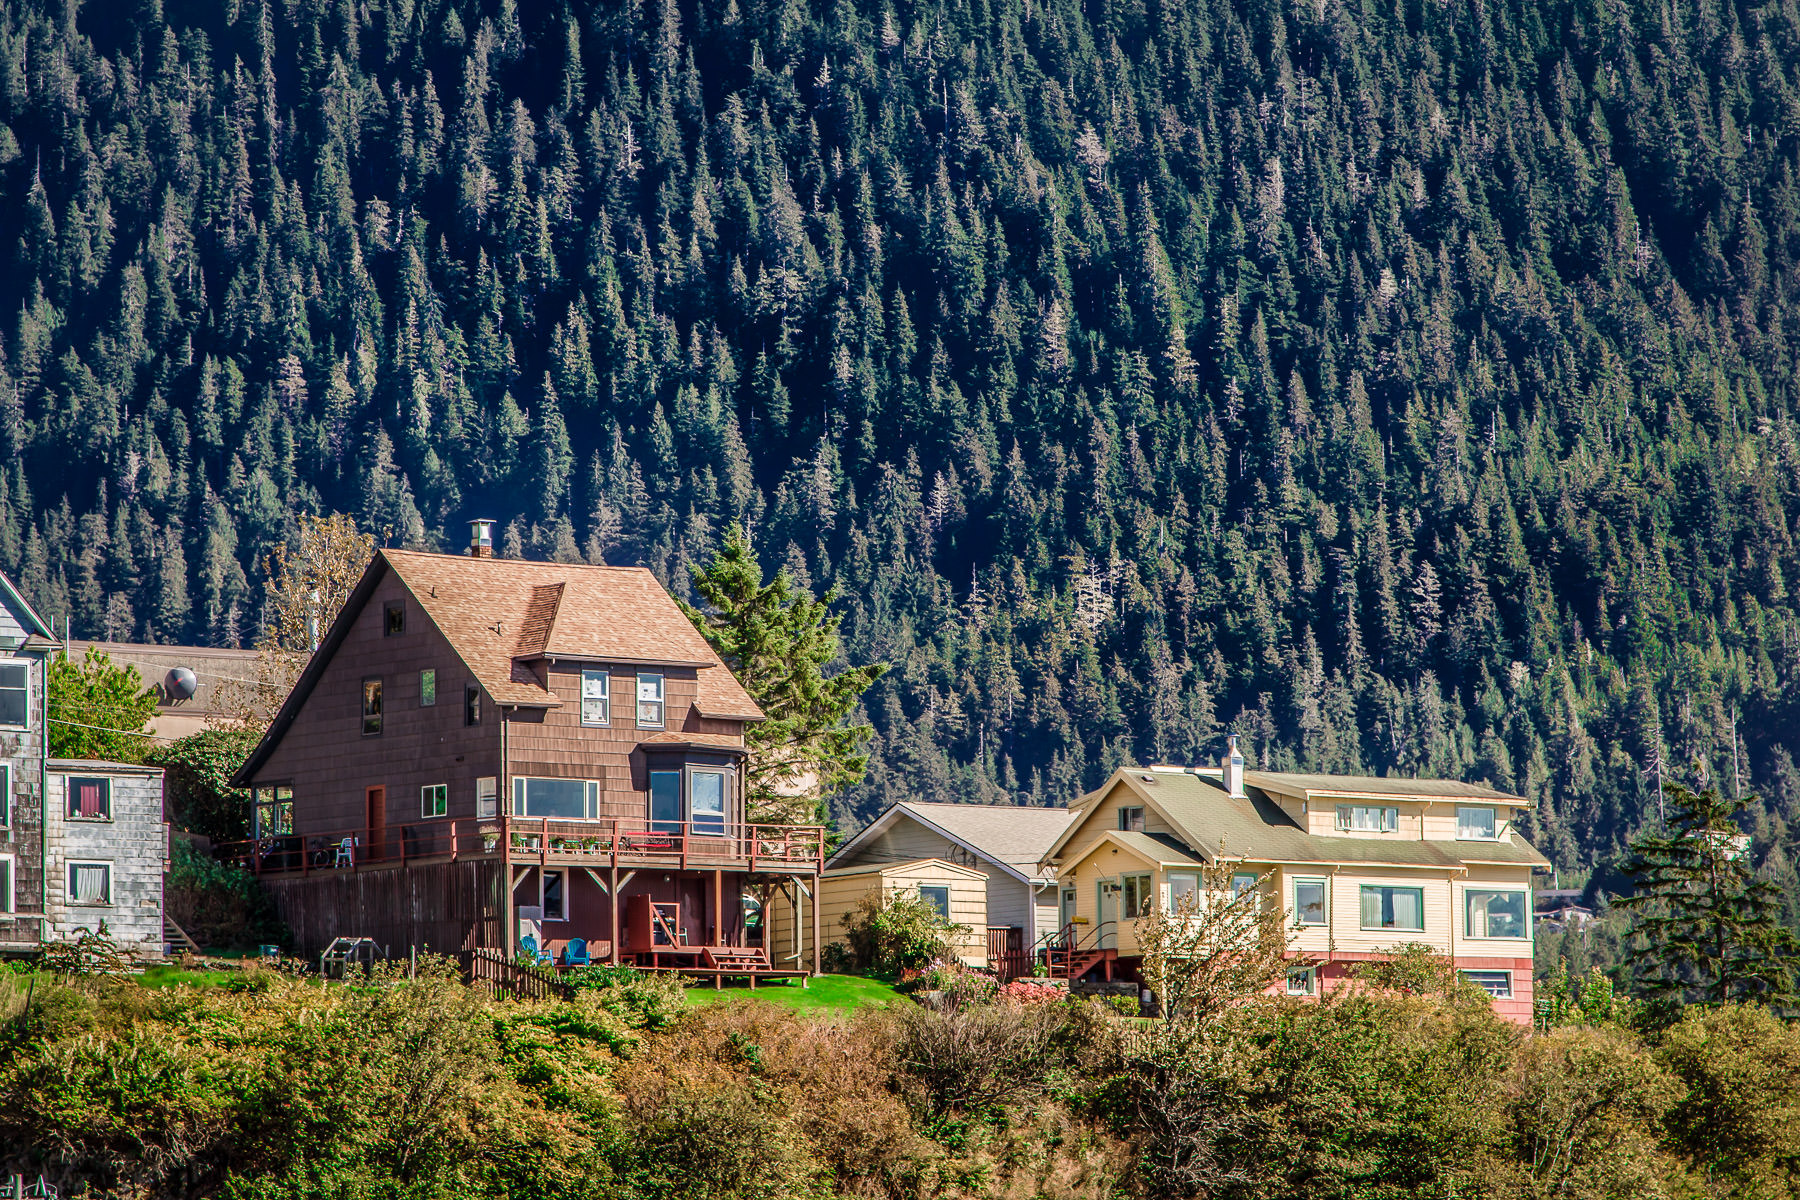 Houses perched on a hillside in Ketchikan, Alaska.